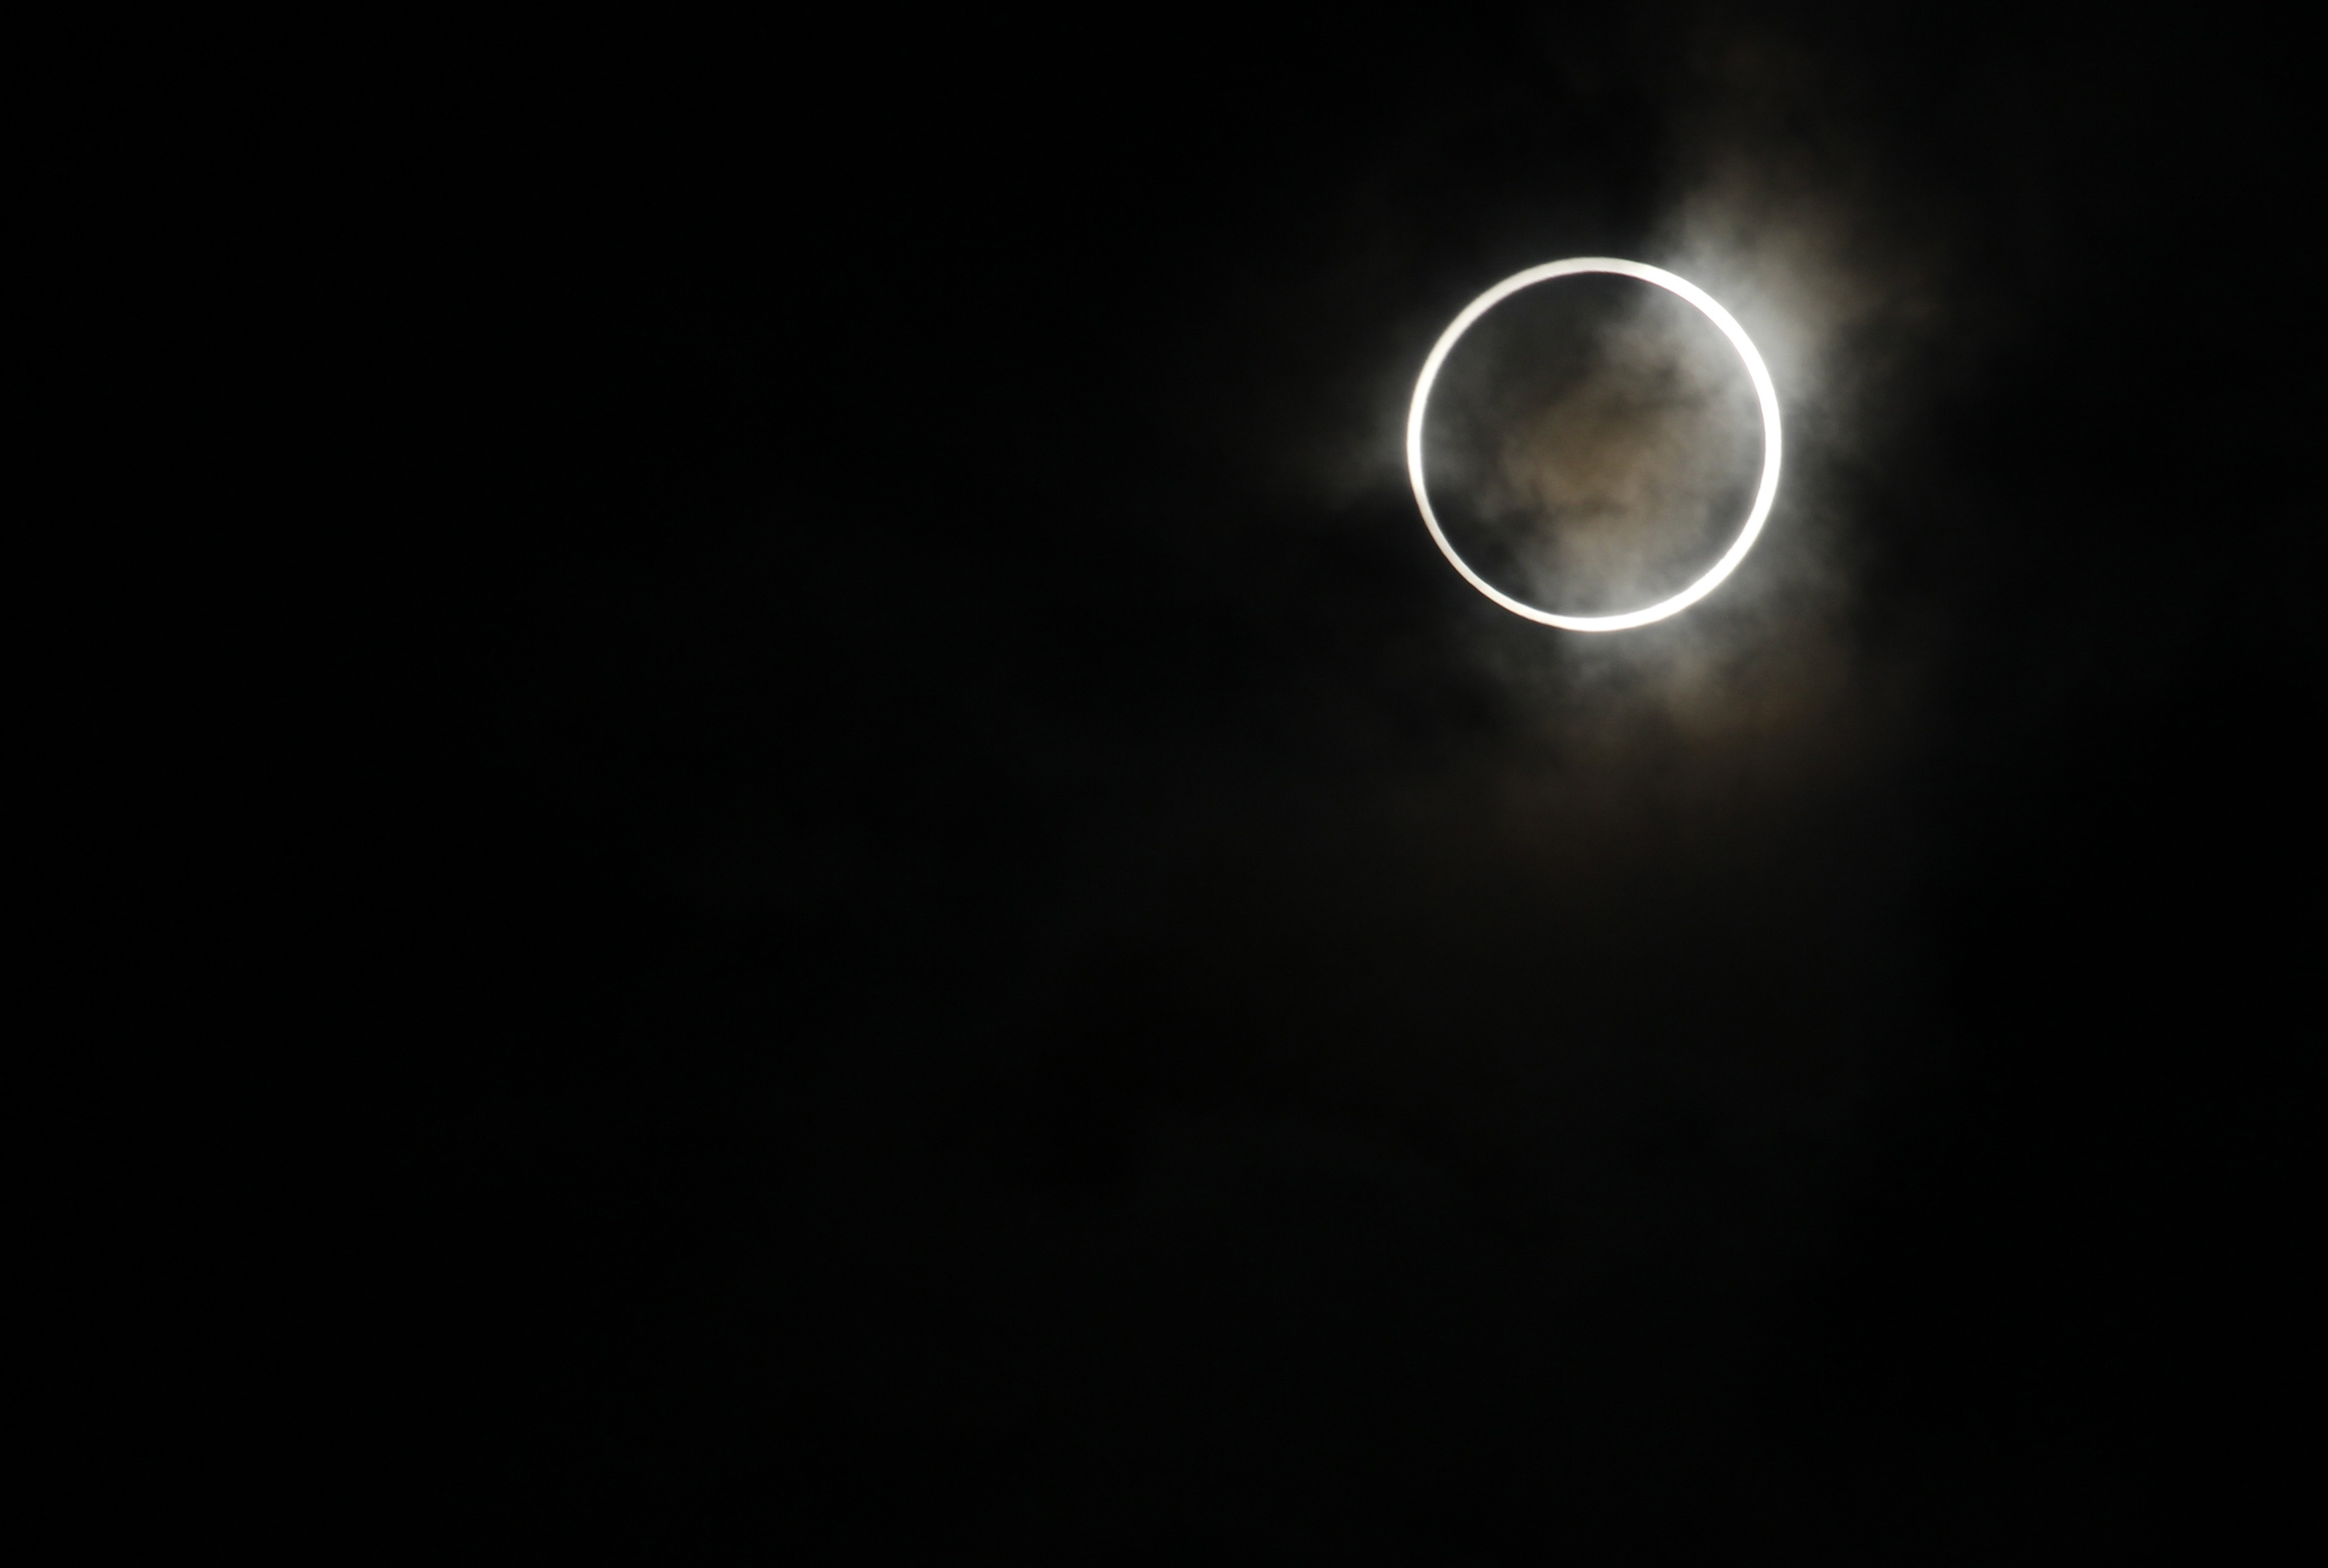 Eclipse de ayer, fotos, y vídeo.